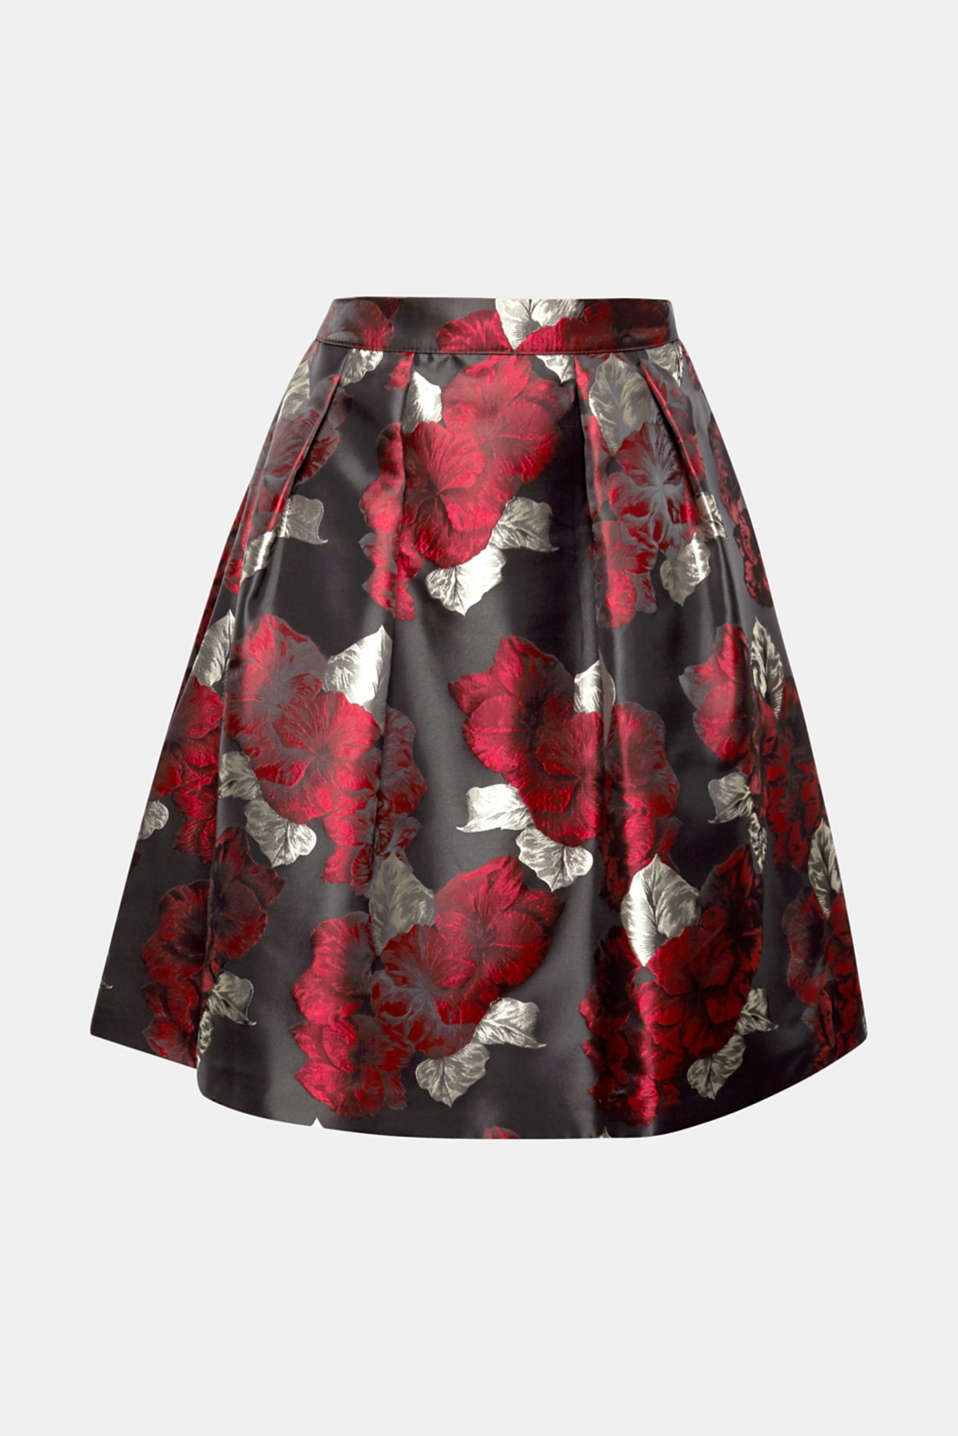 A floral pattern and shimmering finish make this A-line skirt a head-turning piece.